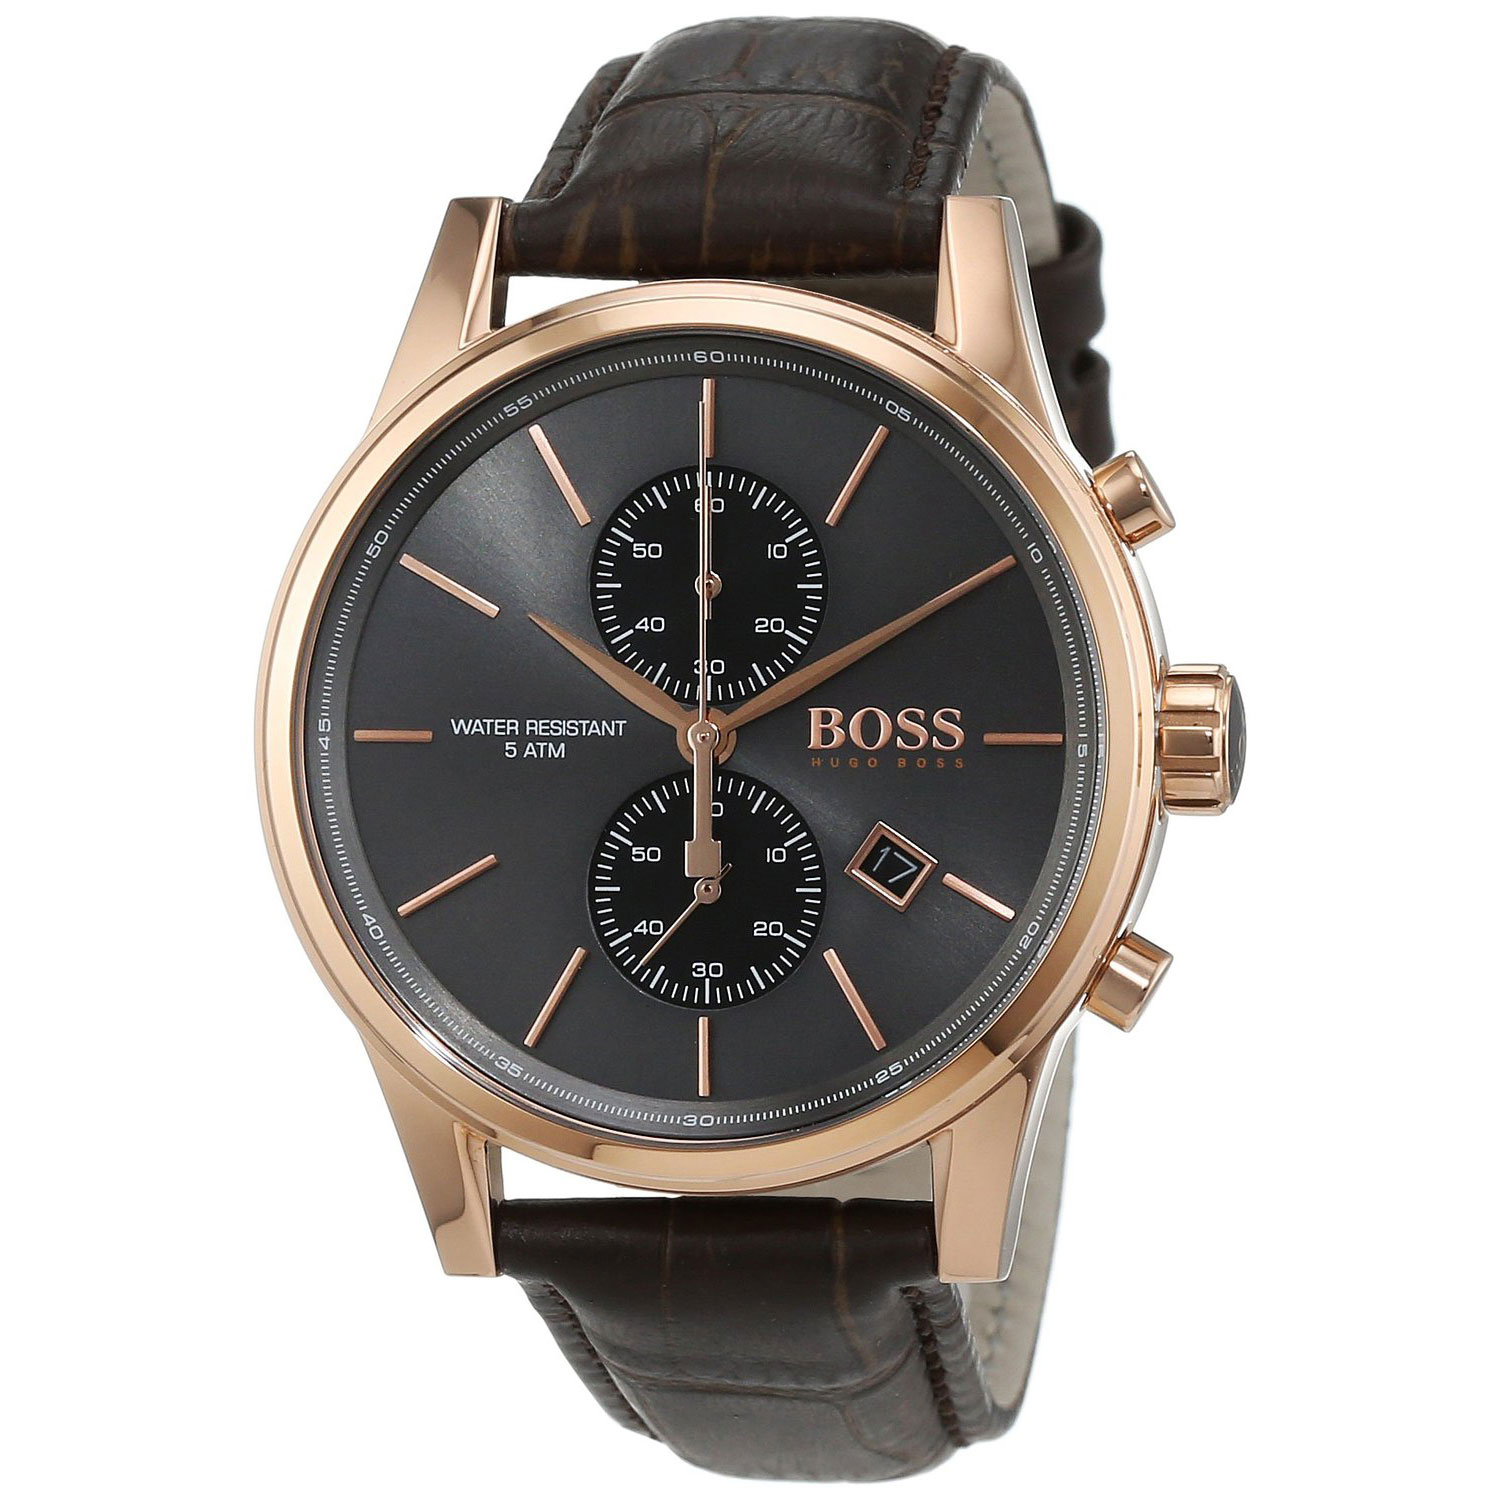 Hugo Boss Watch with rose gold stainless steel and black